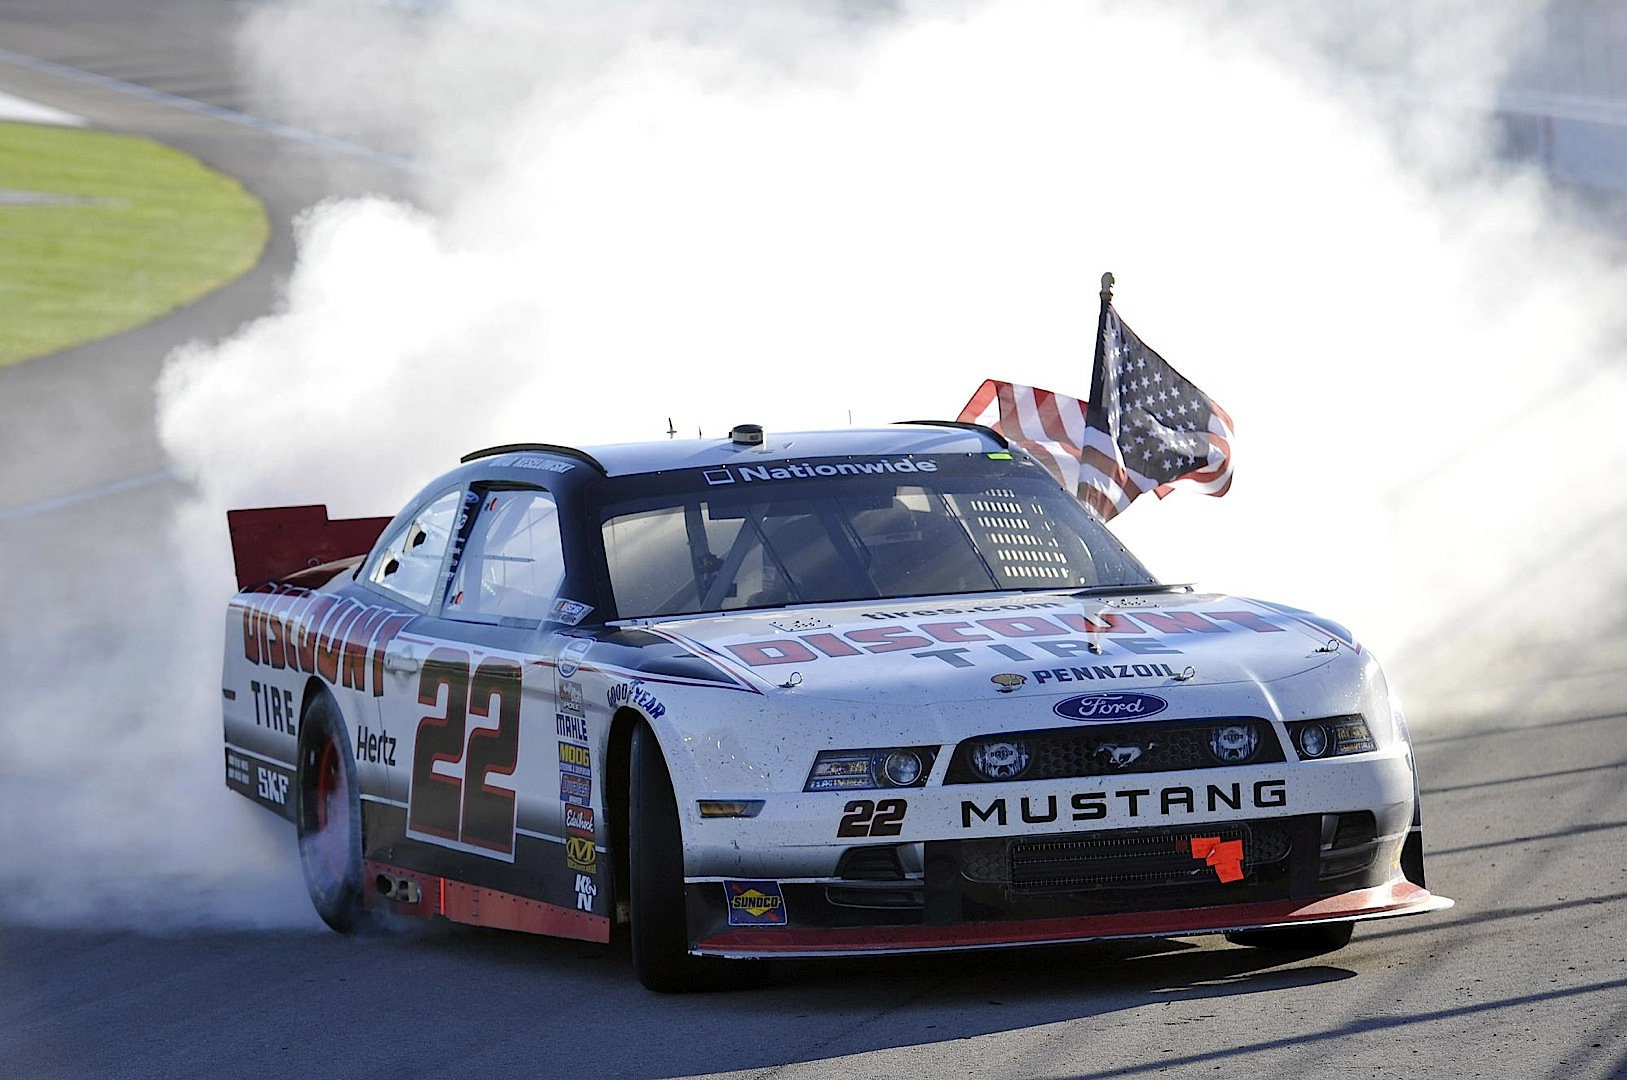 Ford Mustang Wins First NASCAR Nationwide Race in 2014 - autoevolution